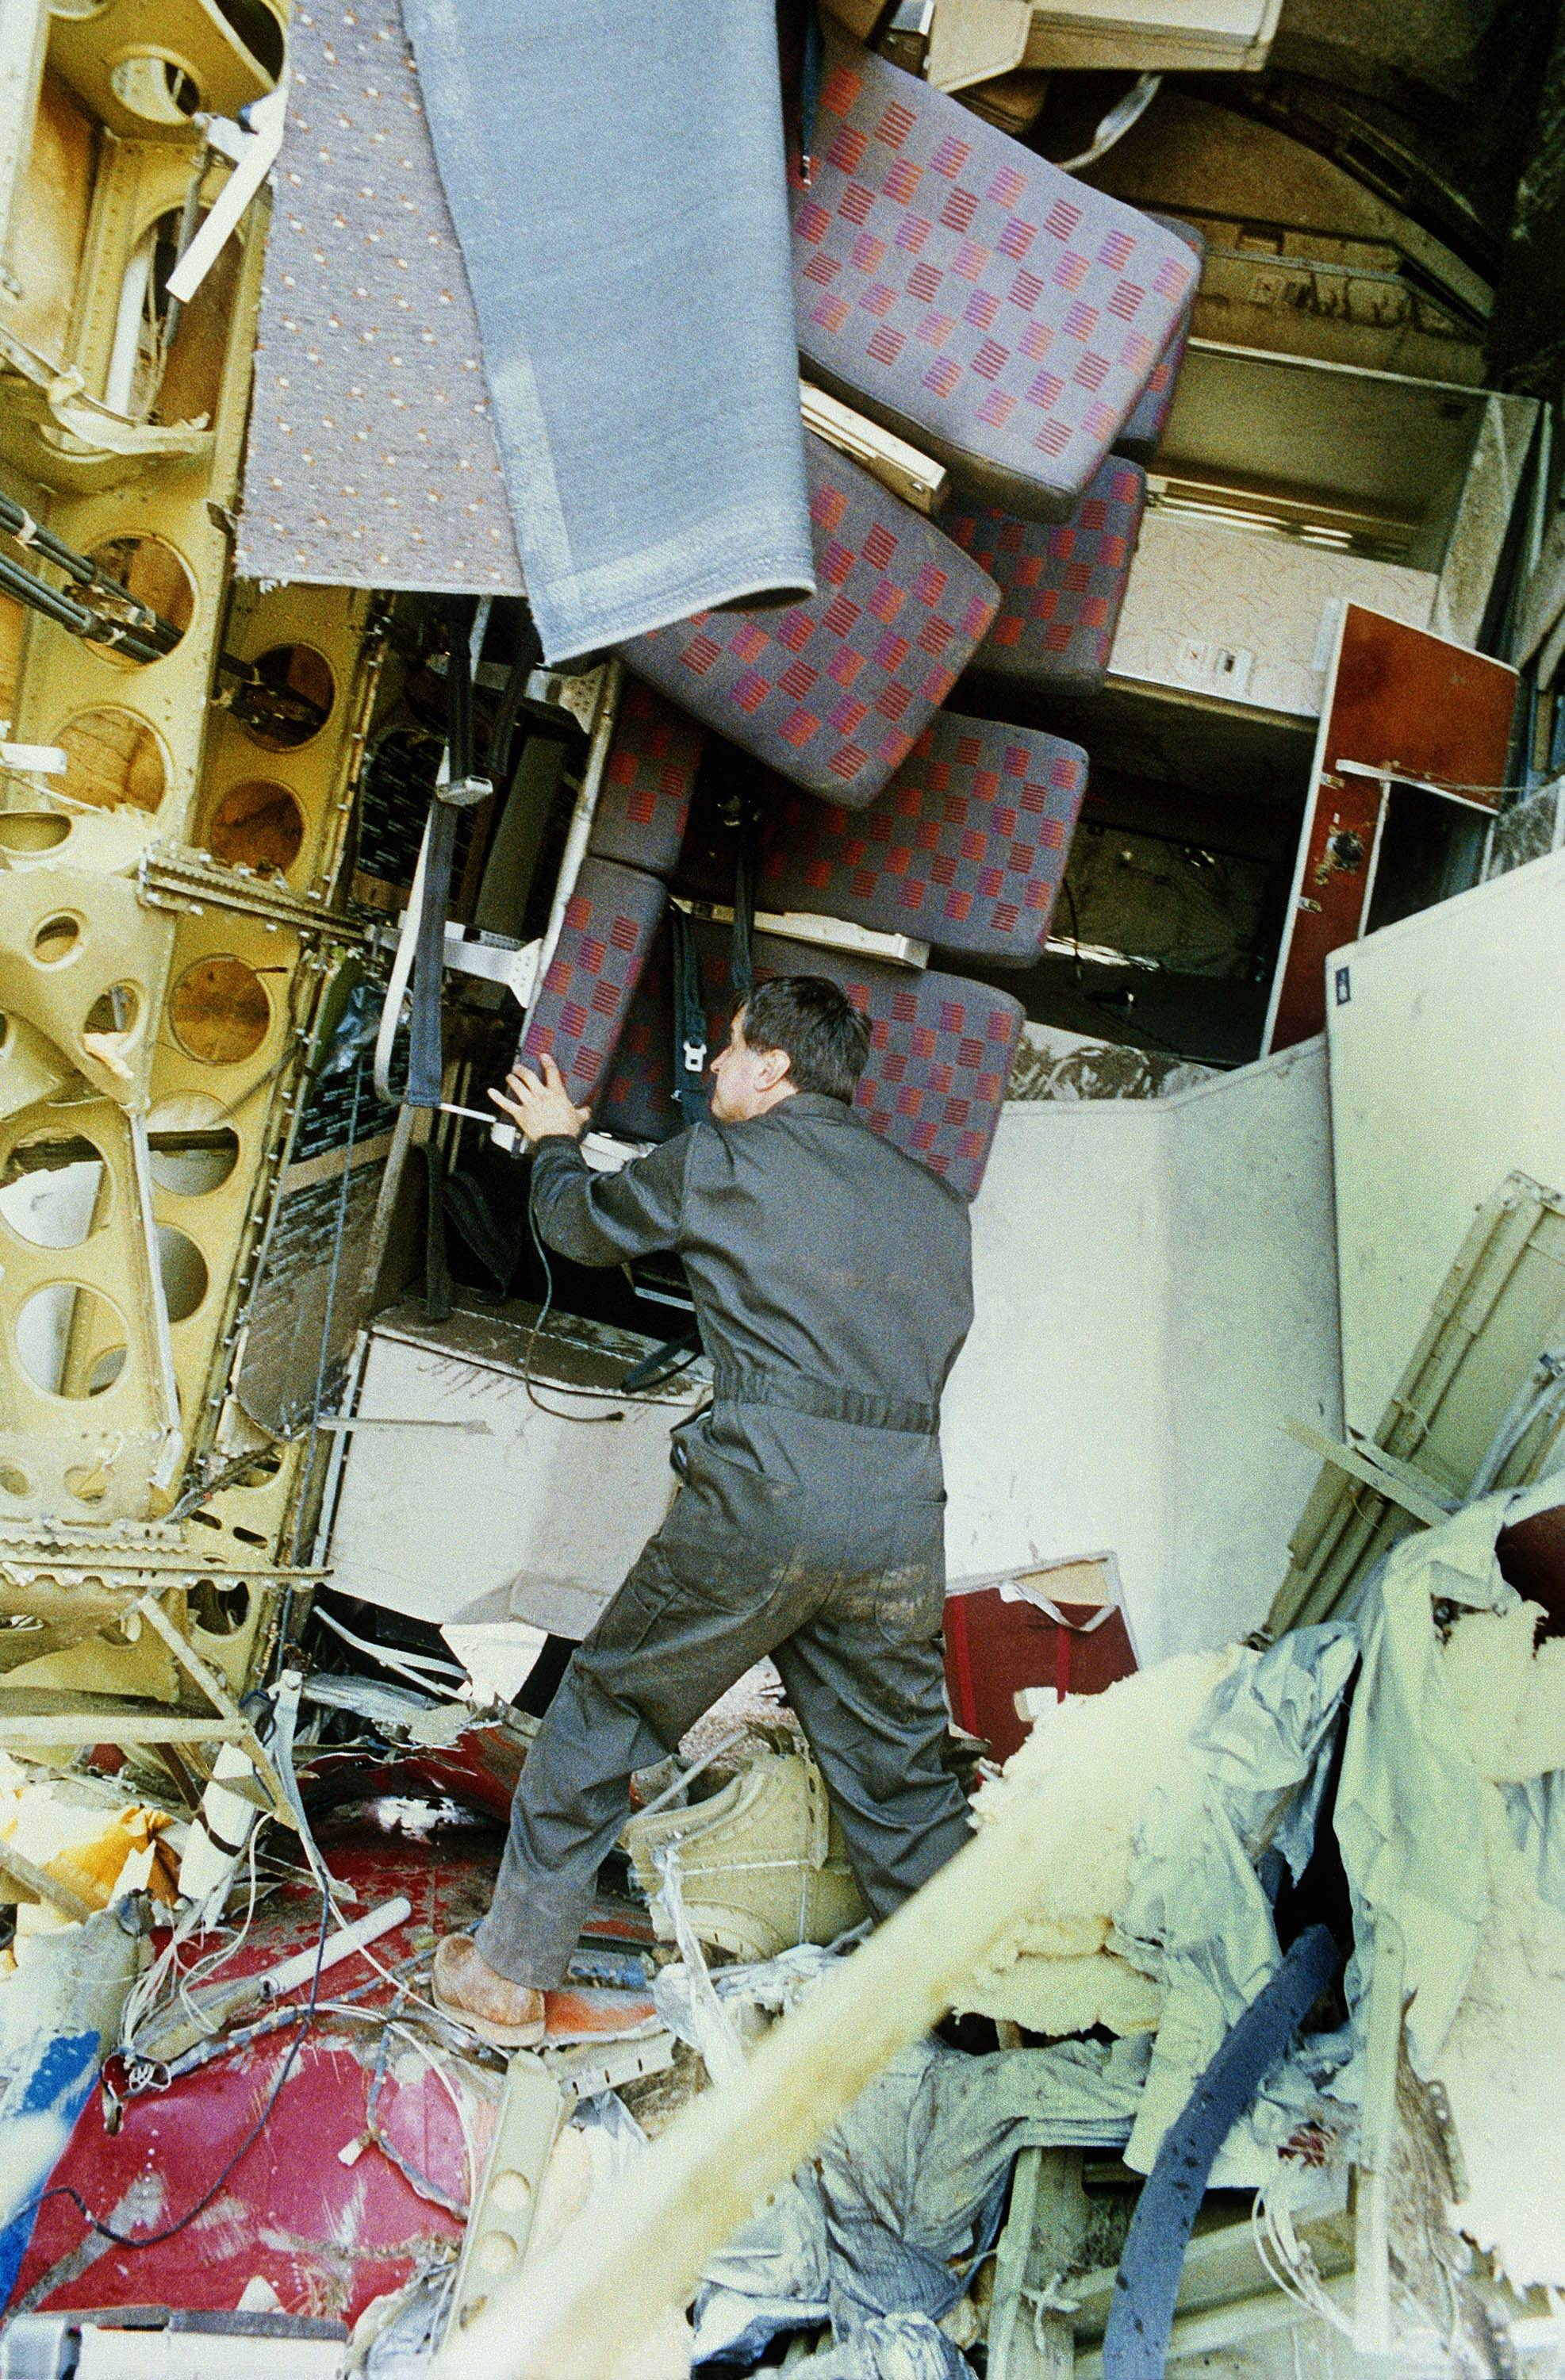 A National Transportation Saftey Investigator looks at the ruptured passenger compartment of the United Airlines DC-10 in Sioux City, Iowa, Friday, July 21, 1989.